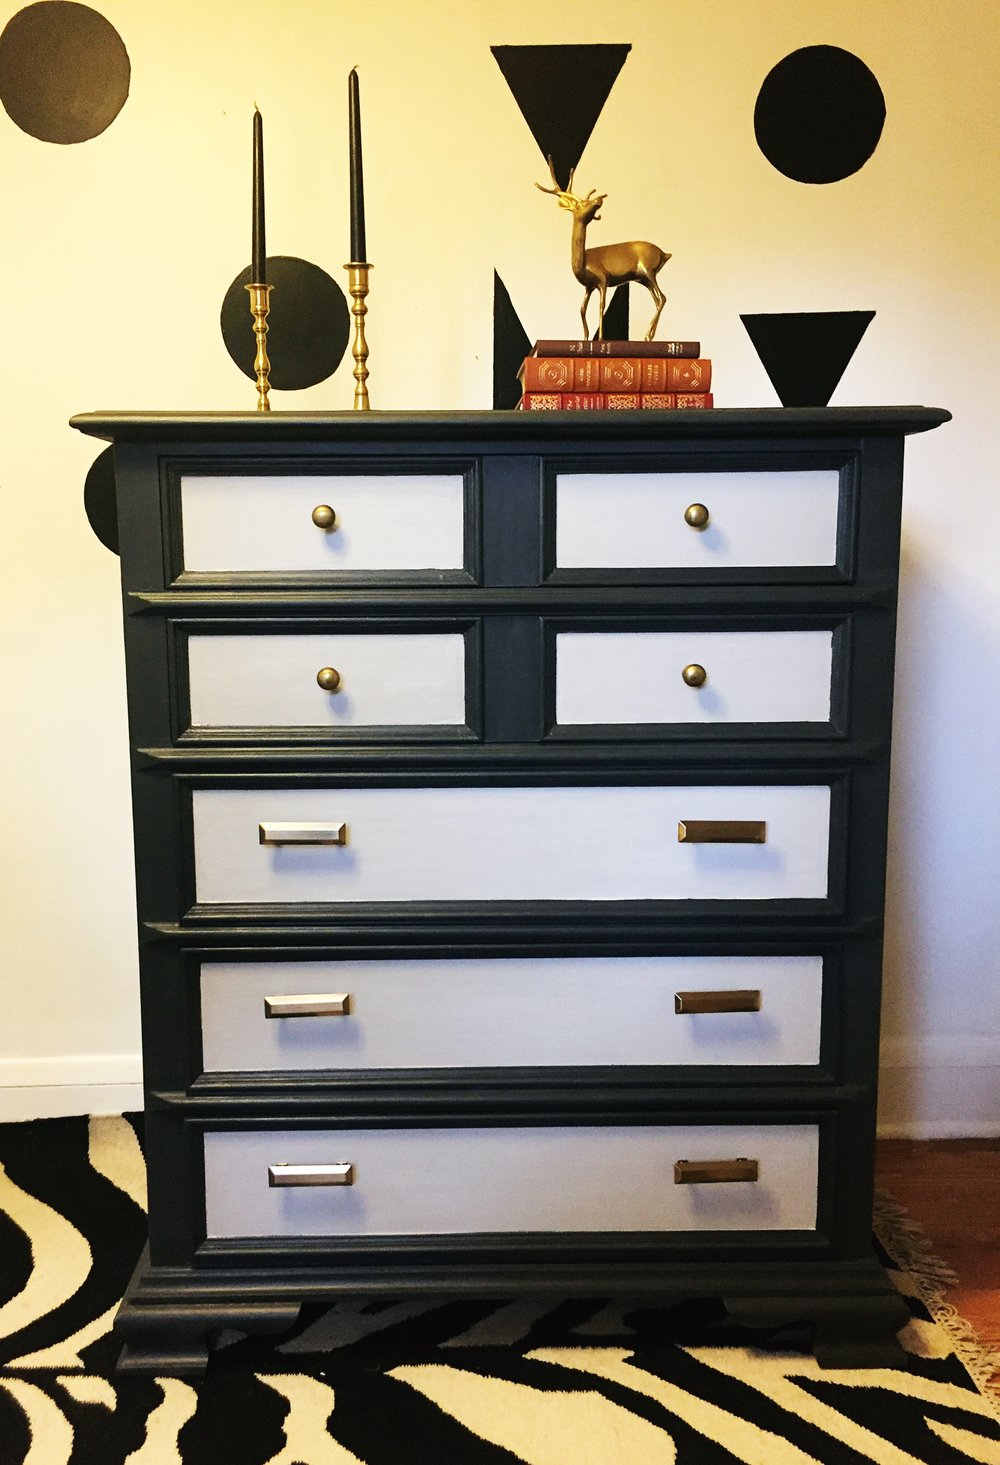 This vintage oak dresser was made by Drexel. I added a coat of light grey and charcoal chalk paint, kept the original brass knobs added new square beveled brass-look pulls from Martha Stewart. It will be for sale Saturday at the Rock 'n' Roll Famers Market.